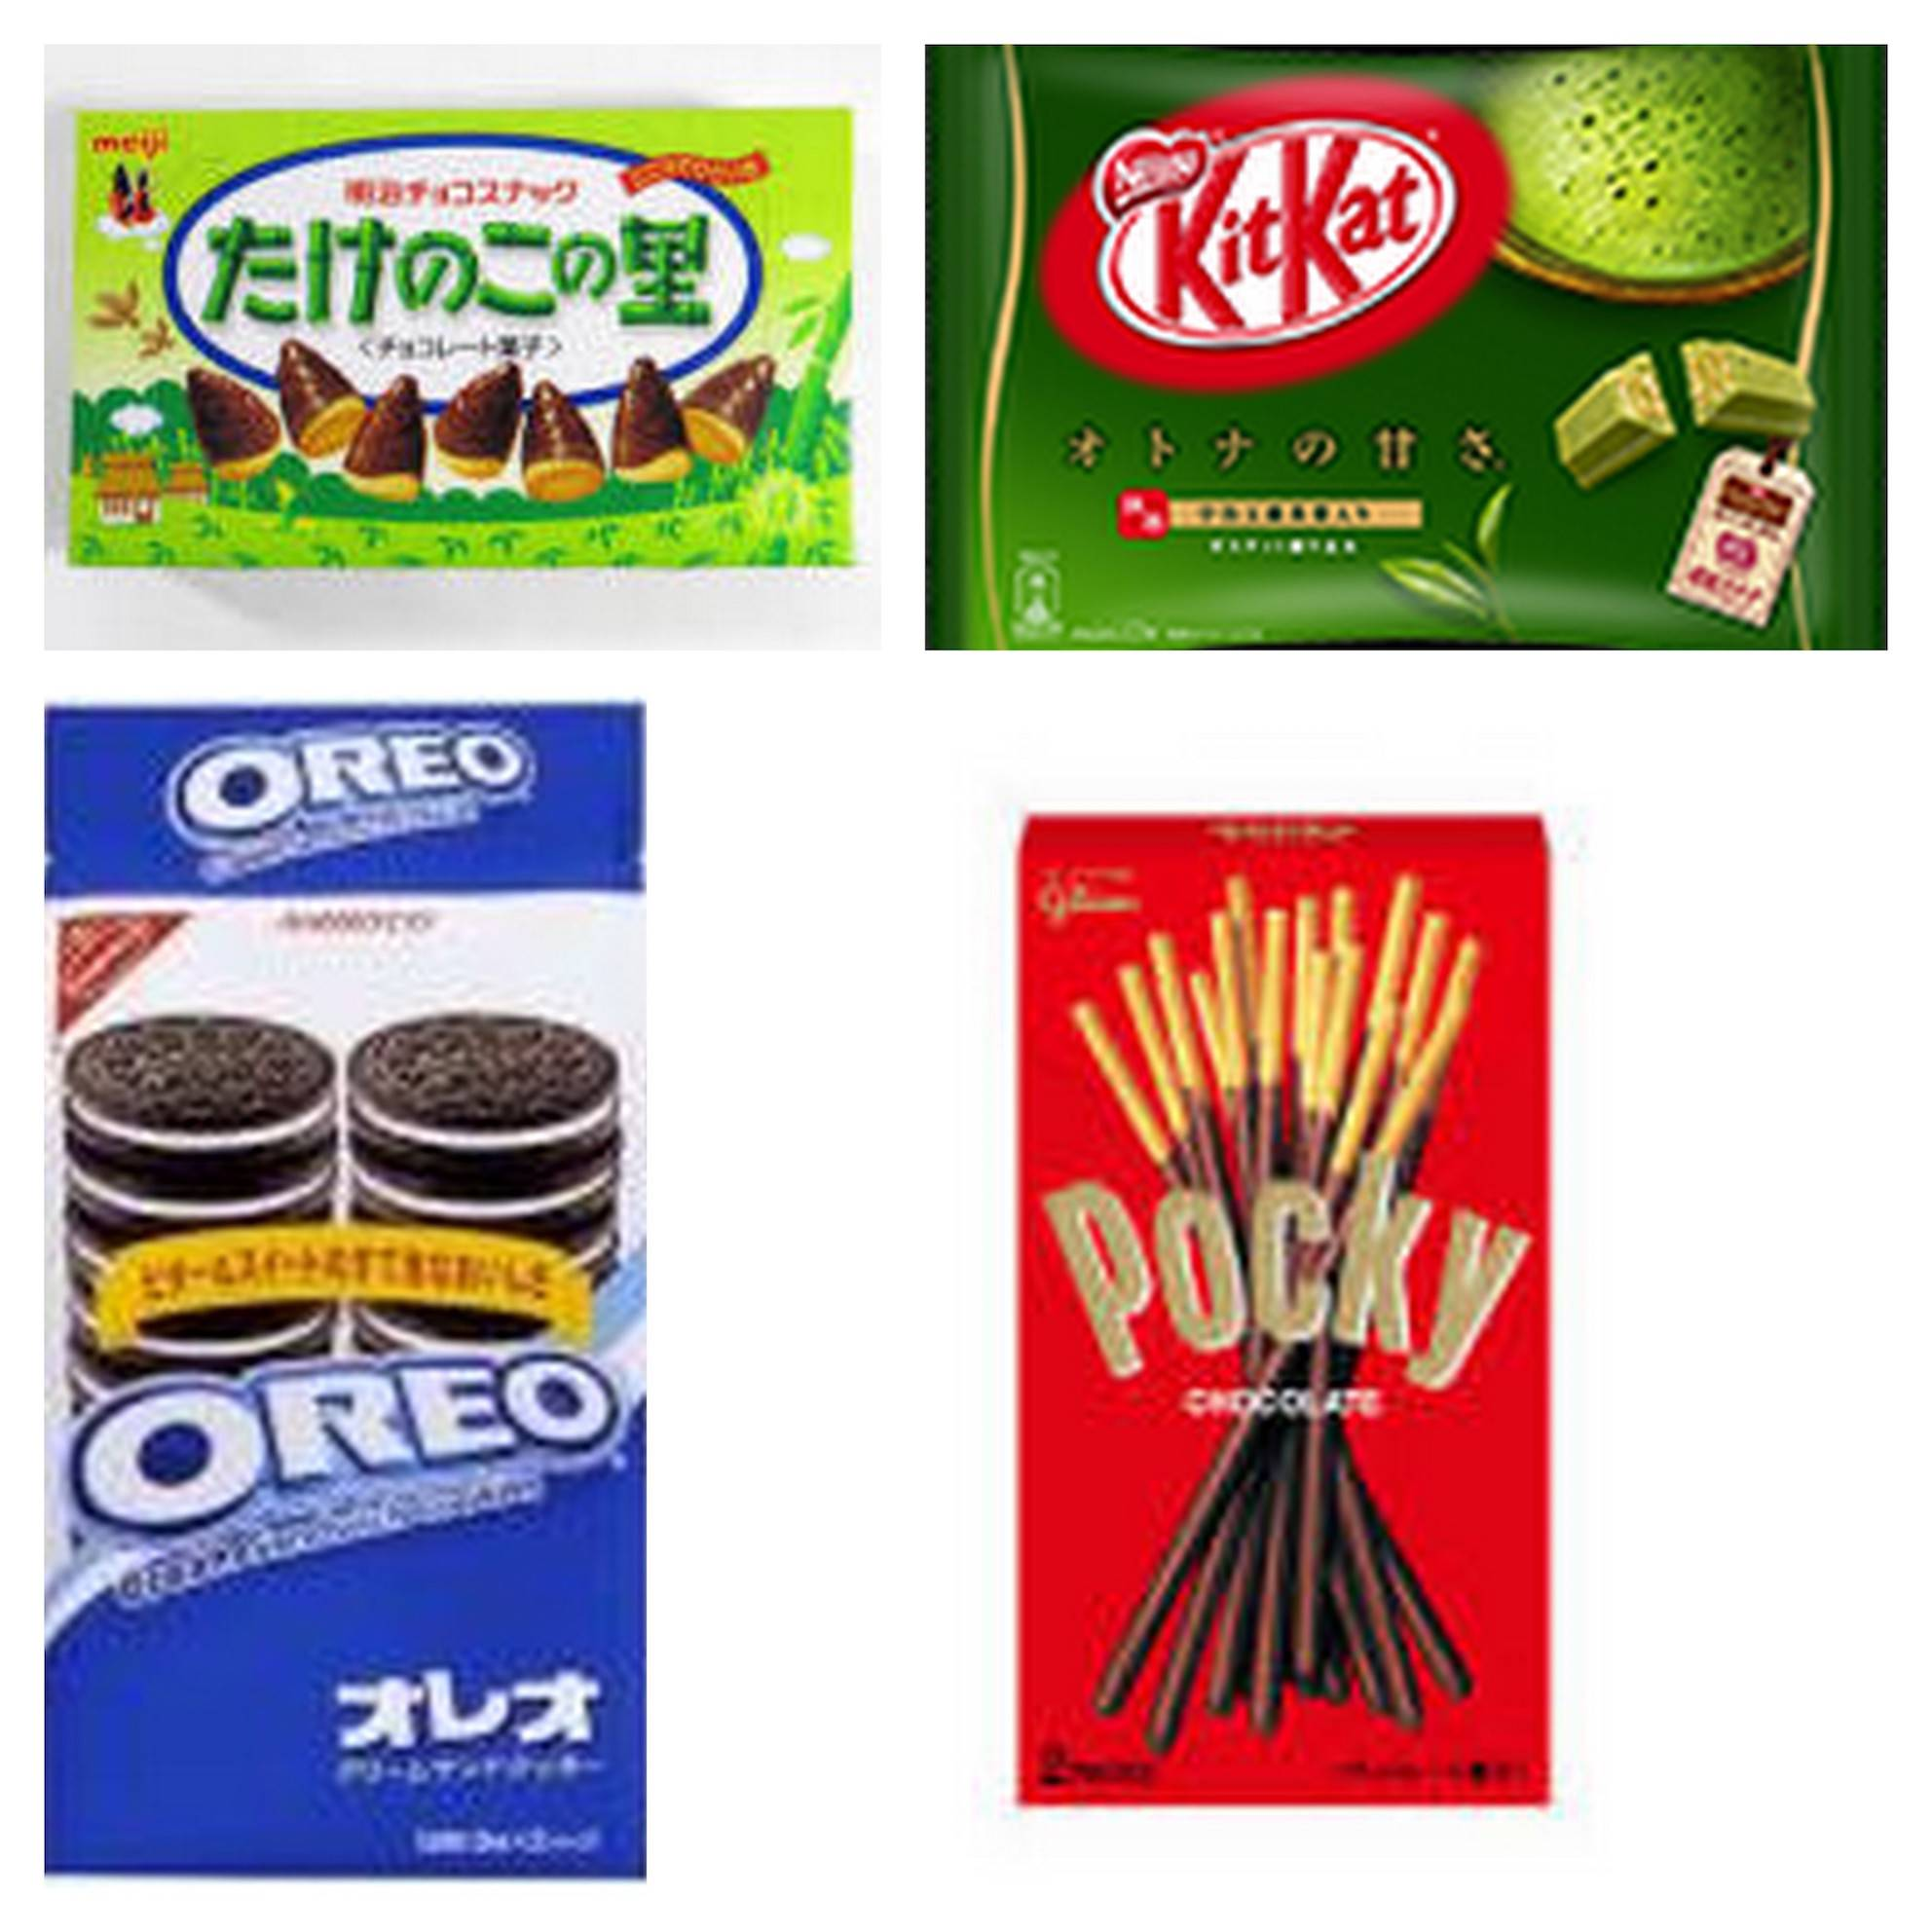 Japanese Snacks and Candies like Meiji, Glico etc....